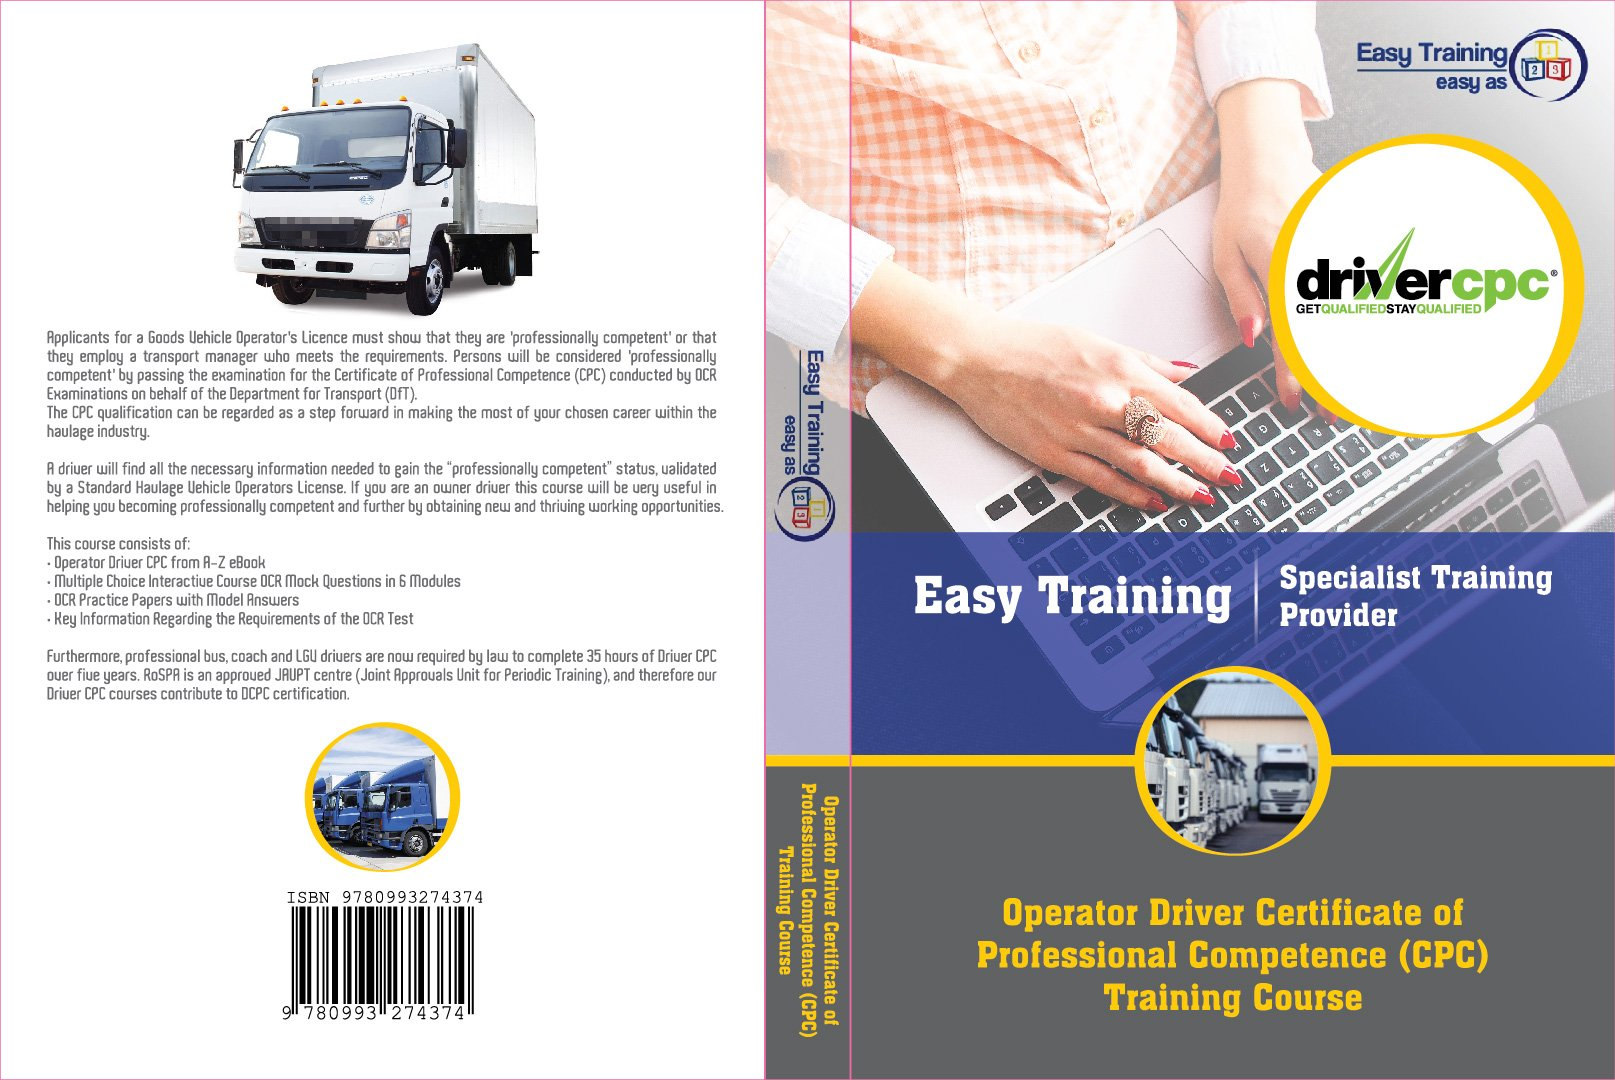 Operator Cpc Lgv And Hgv Driver Cpc The Complete O License